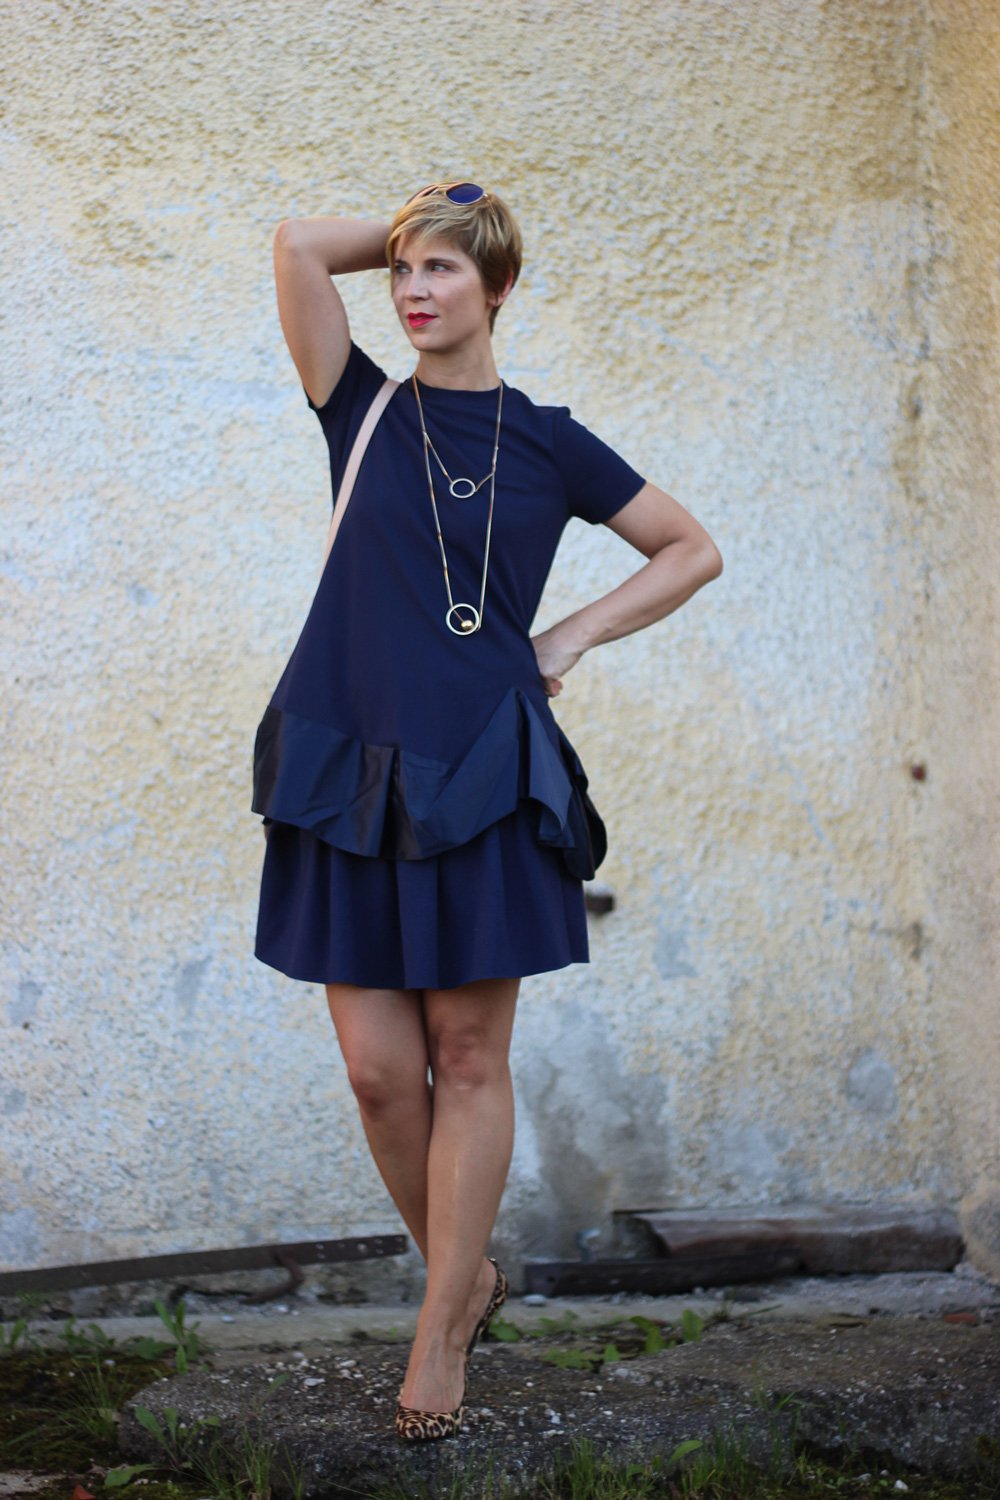 Shirtdress, Petite-Fashion, Asos, Dunkelblau, Darkblue, Rock, Conny Doll, 40plus, Fashionblogger